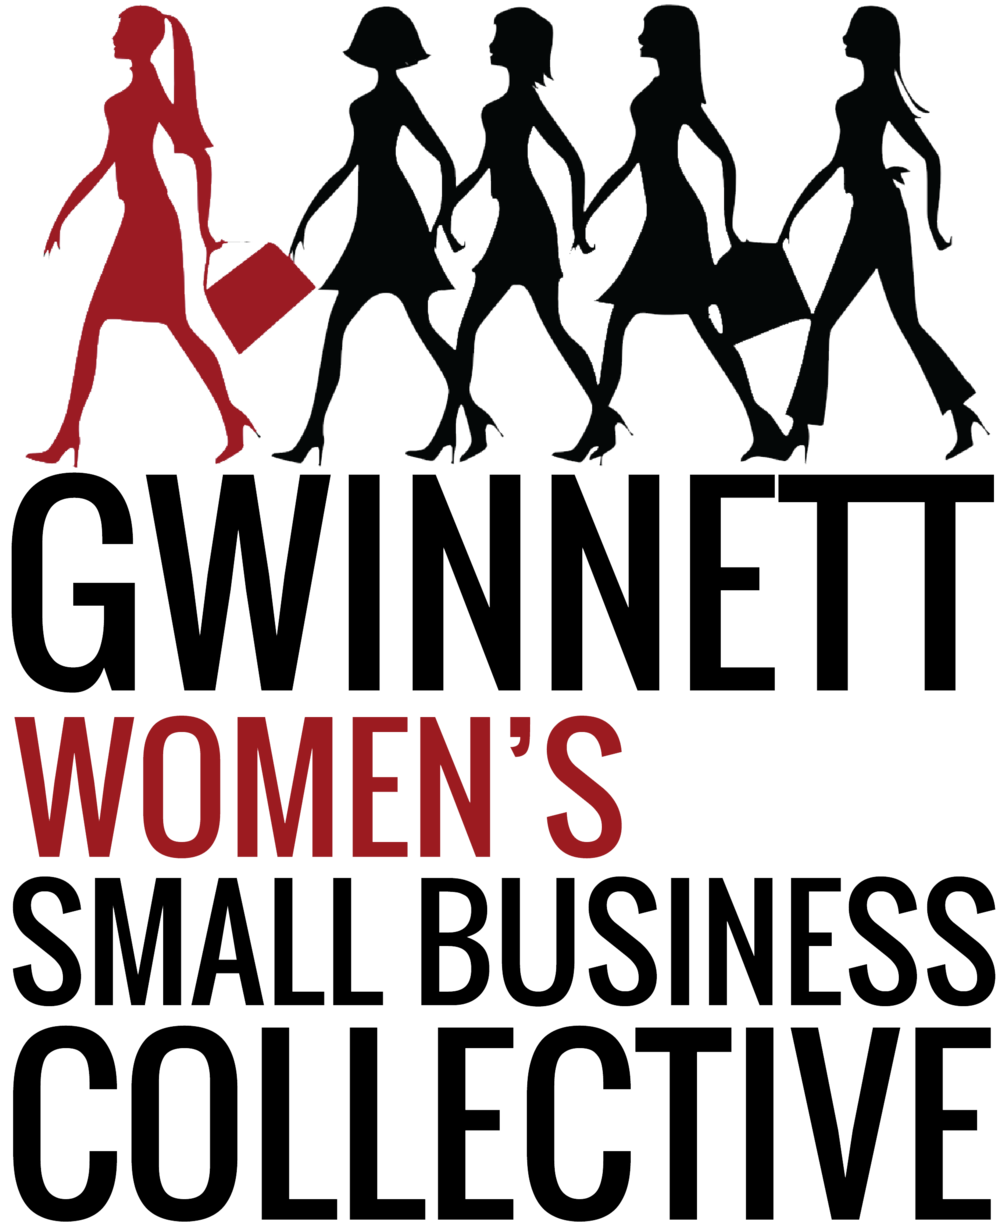 Gwinnett Women's Small Business Collective